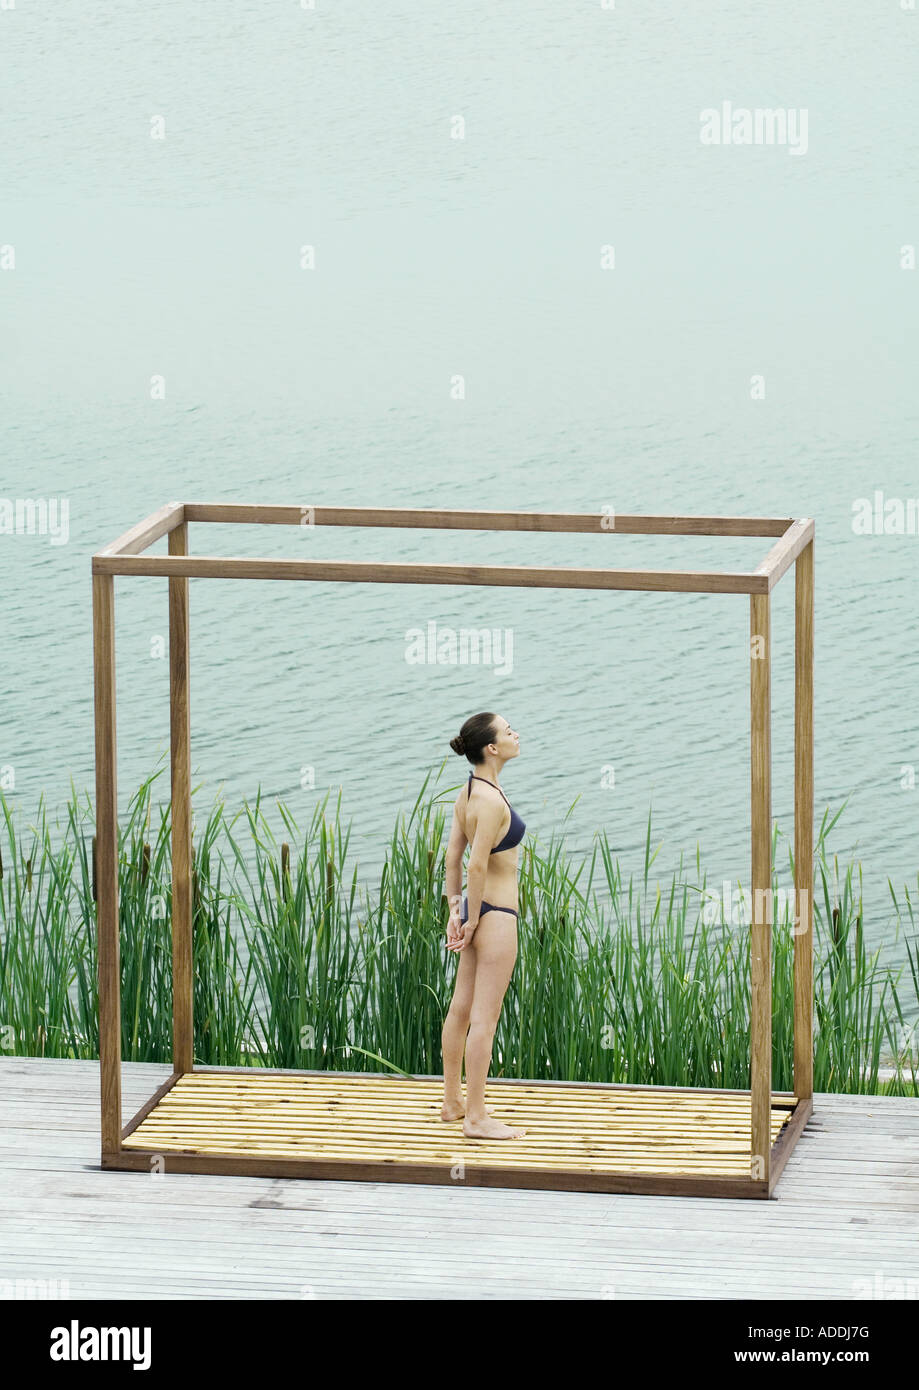 Young woman standing inside square structure, next to body of water - Stock Image